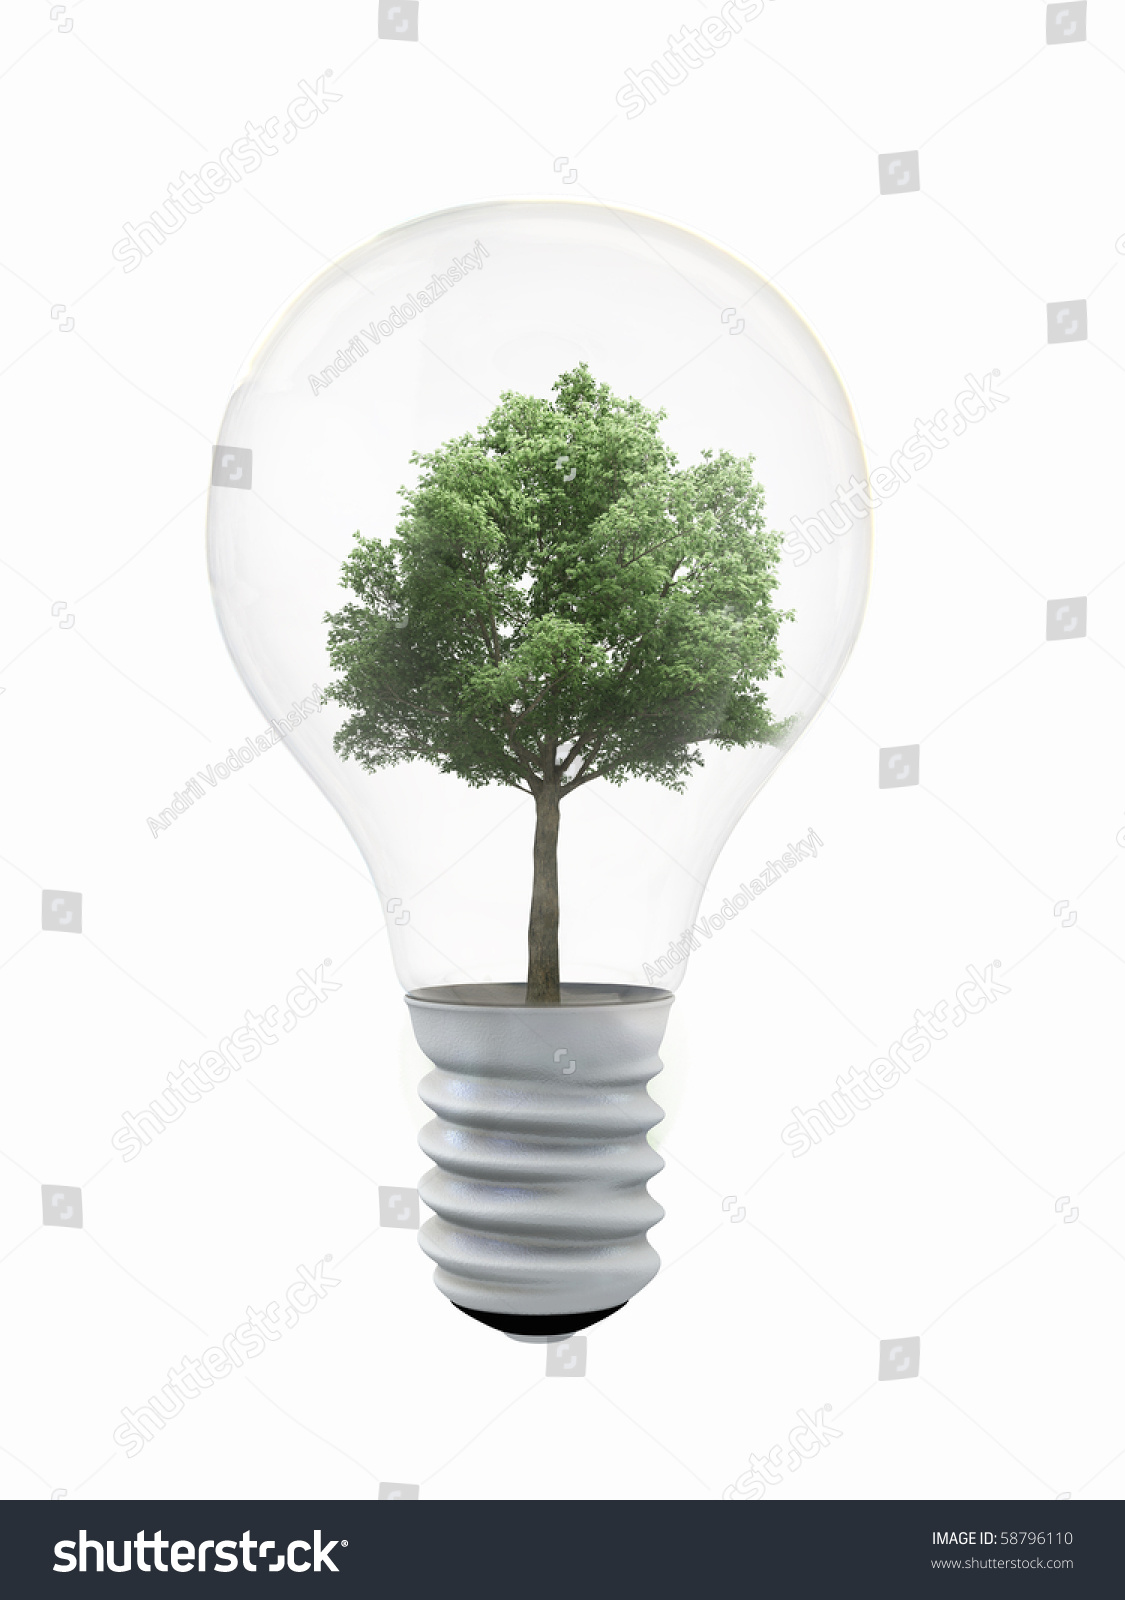 Environmental Ideas Tree In A Lightbulb Stock Photo ...